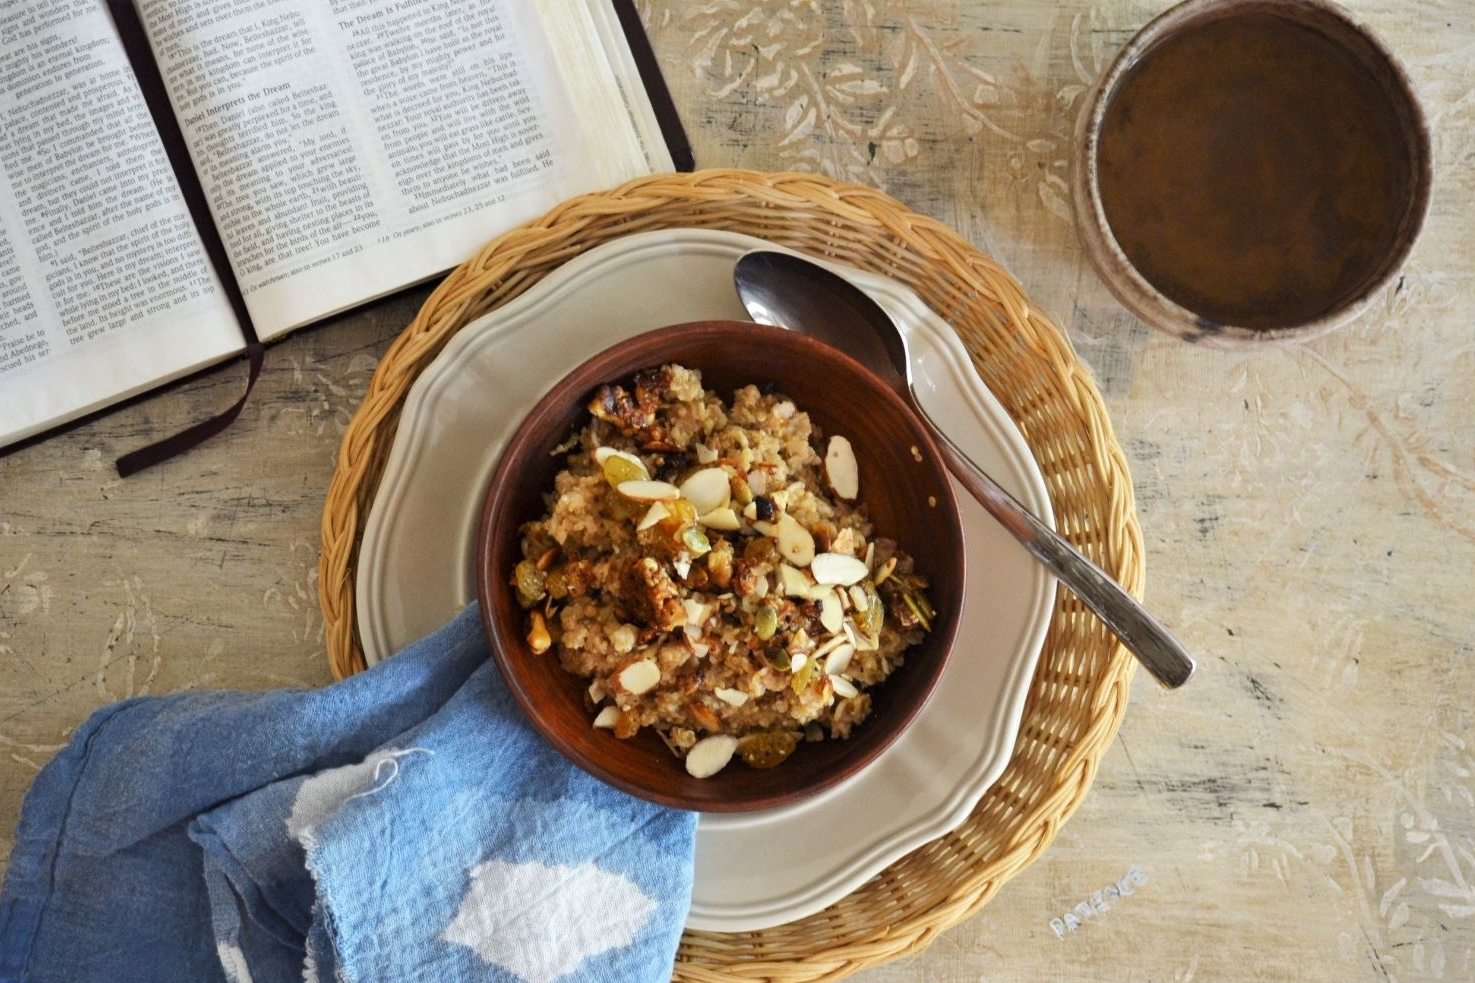 Nourishing Breakfasts | Making Room for Peace